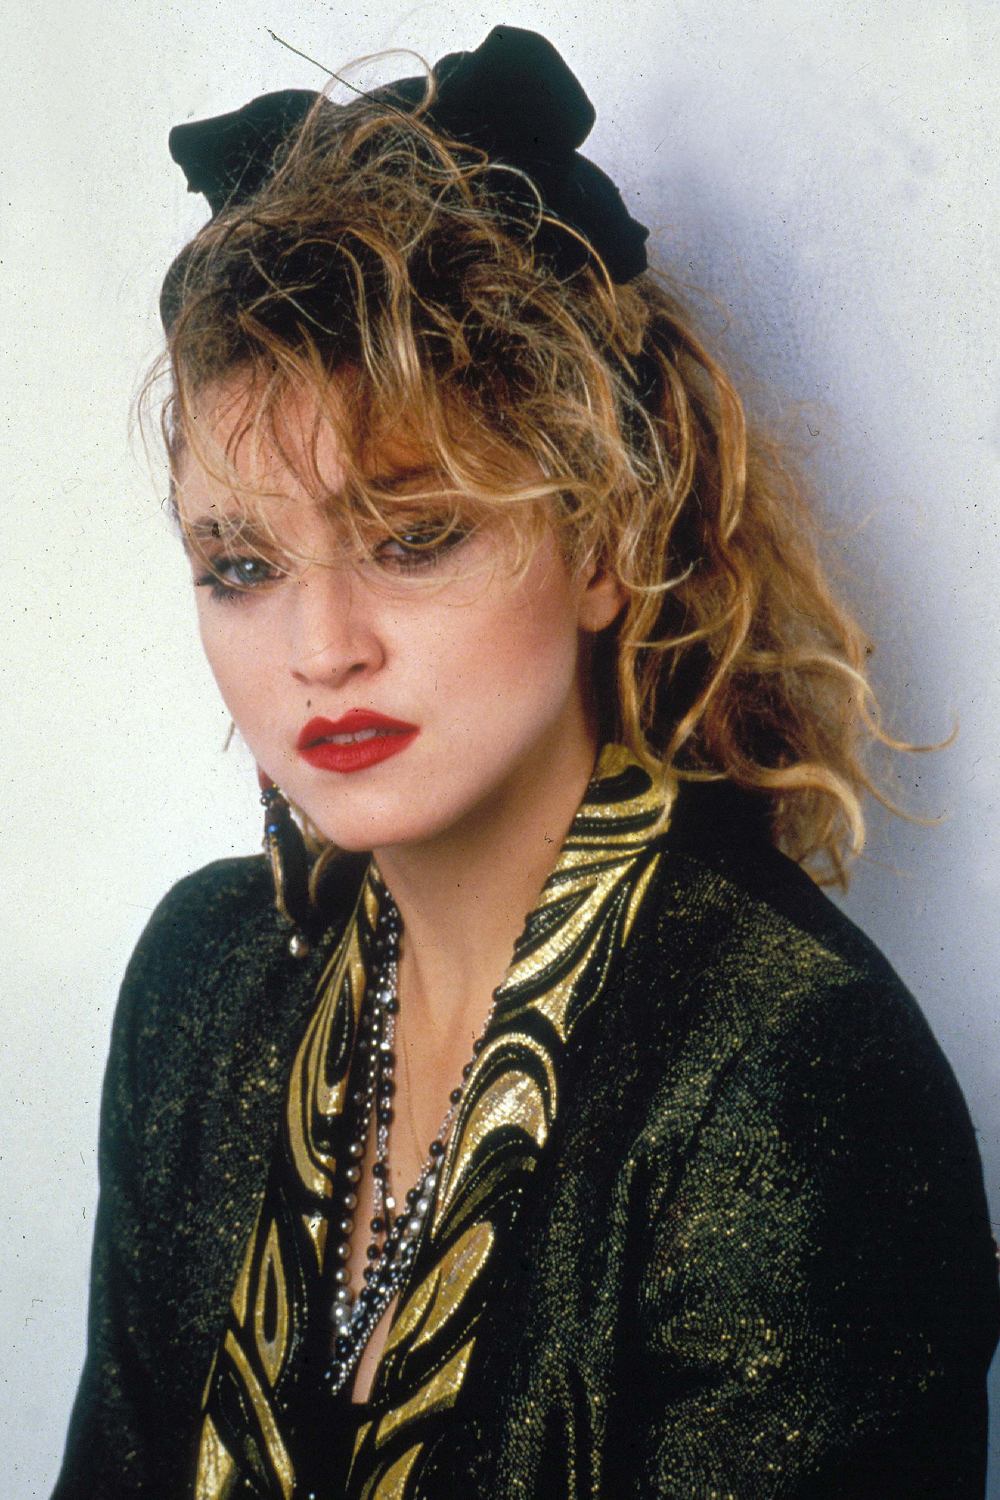 10 Icons That Defined the  80s Fashion  the Decade With All the     There was nothing quite like Madonna in the eighties